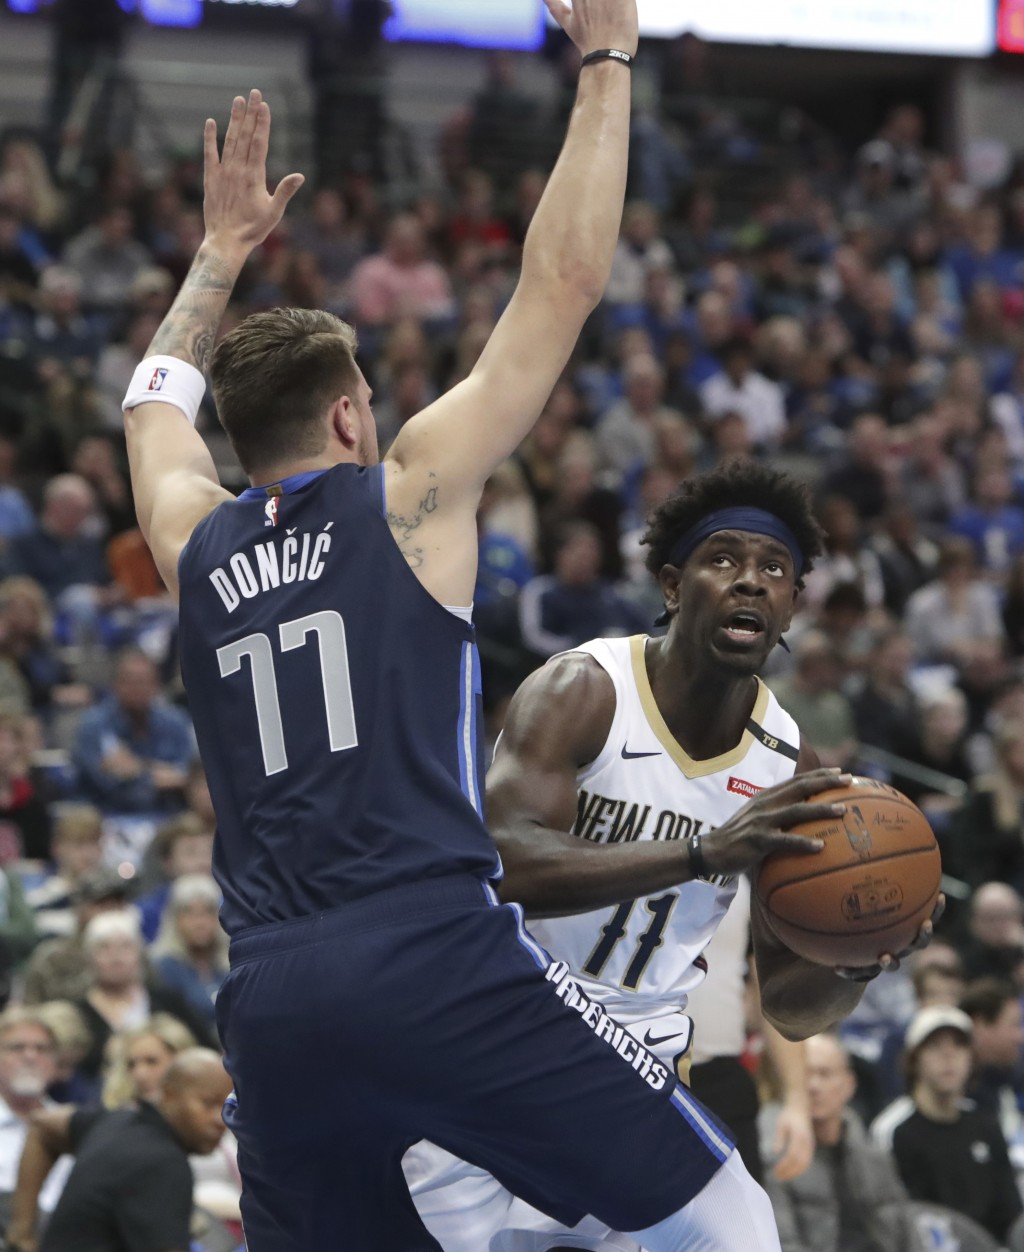 New Orleans Pelicans guard Jrue Holiday (11) looks to shoot against Dallas Mavericks forward Luka Doncic (77) during the first half of an NBA basketba...